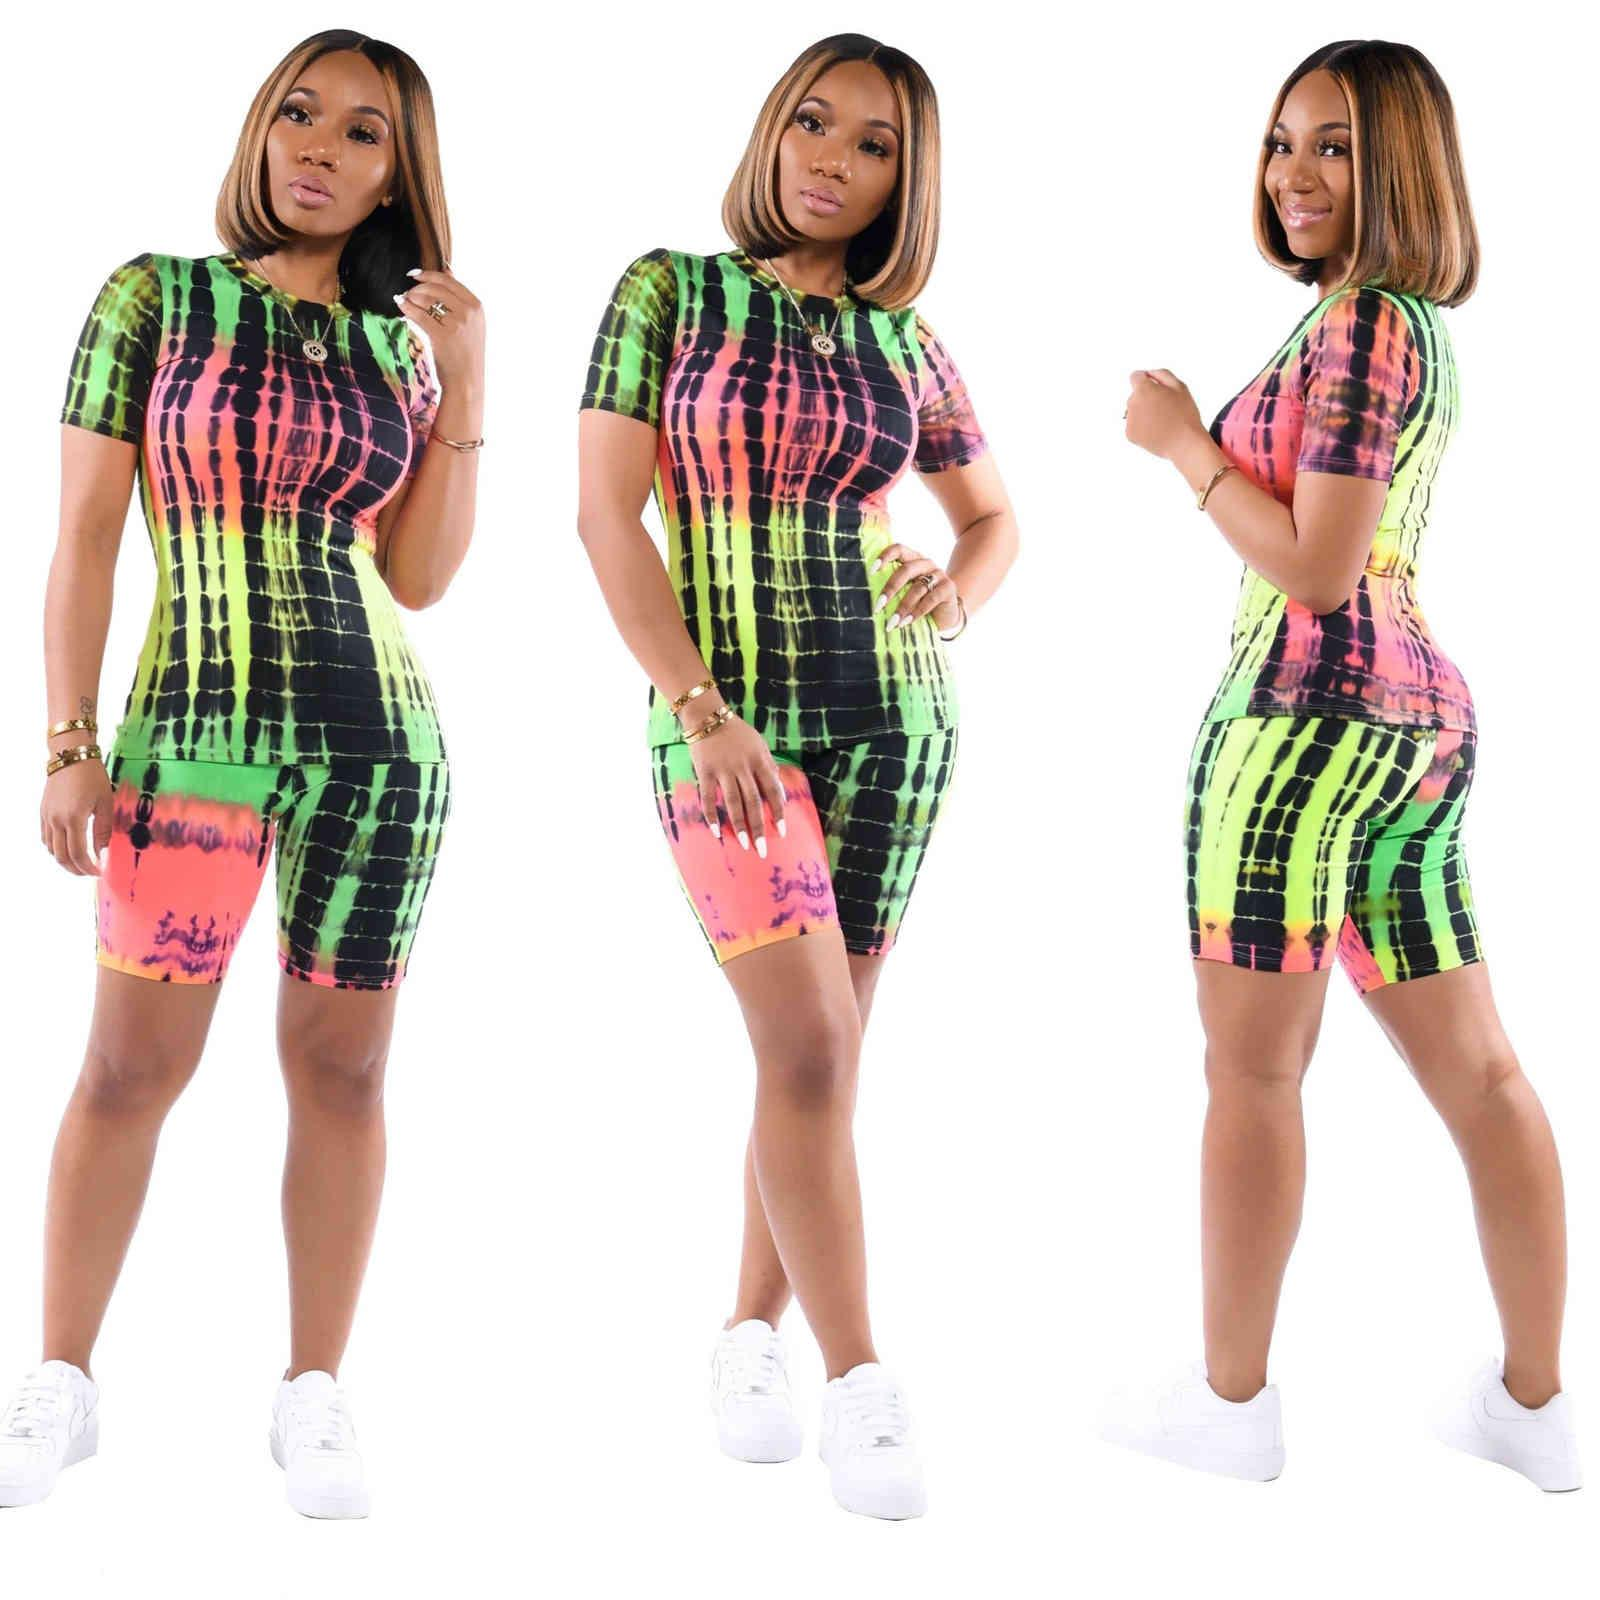 Women Tracksuits Short Sleeve Outfits 2 Piece Set casual printing sports Letter summer Womens Clothing